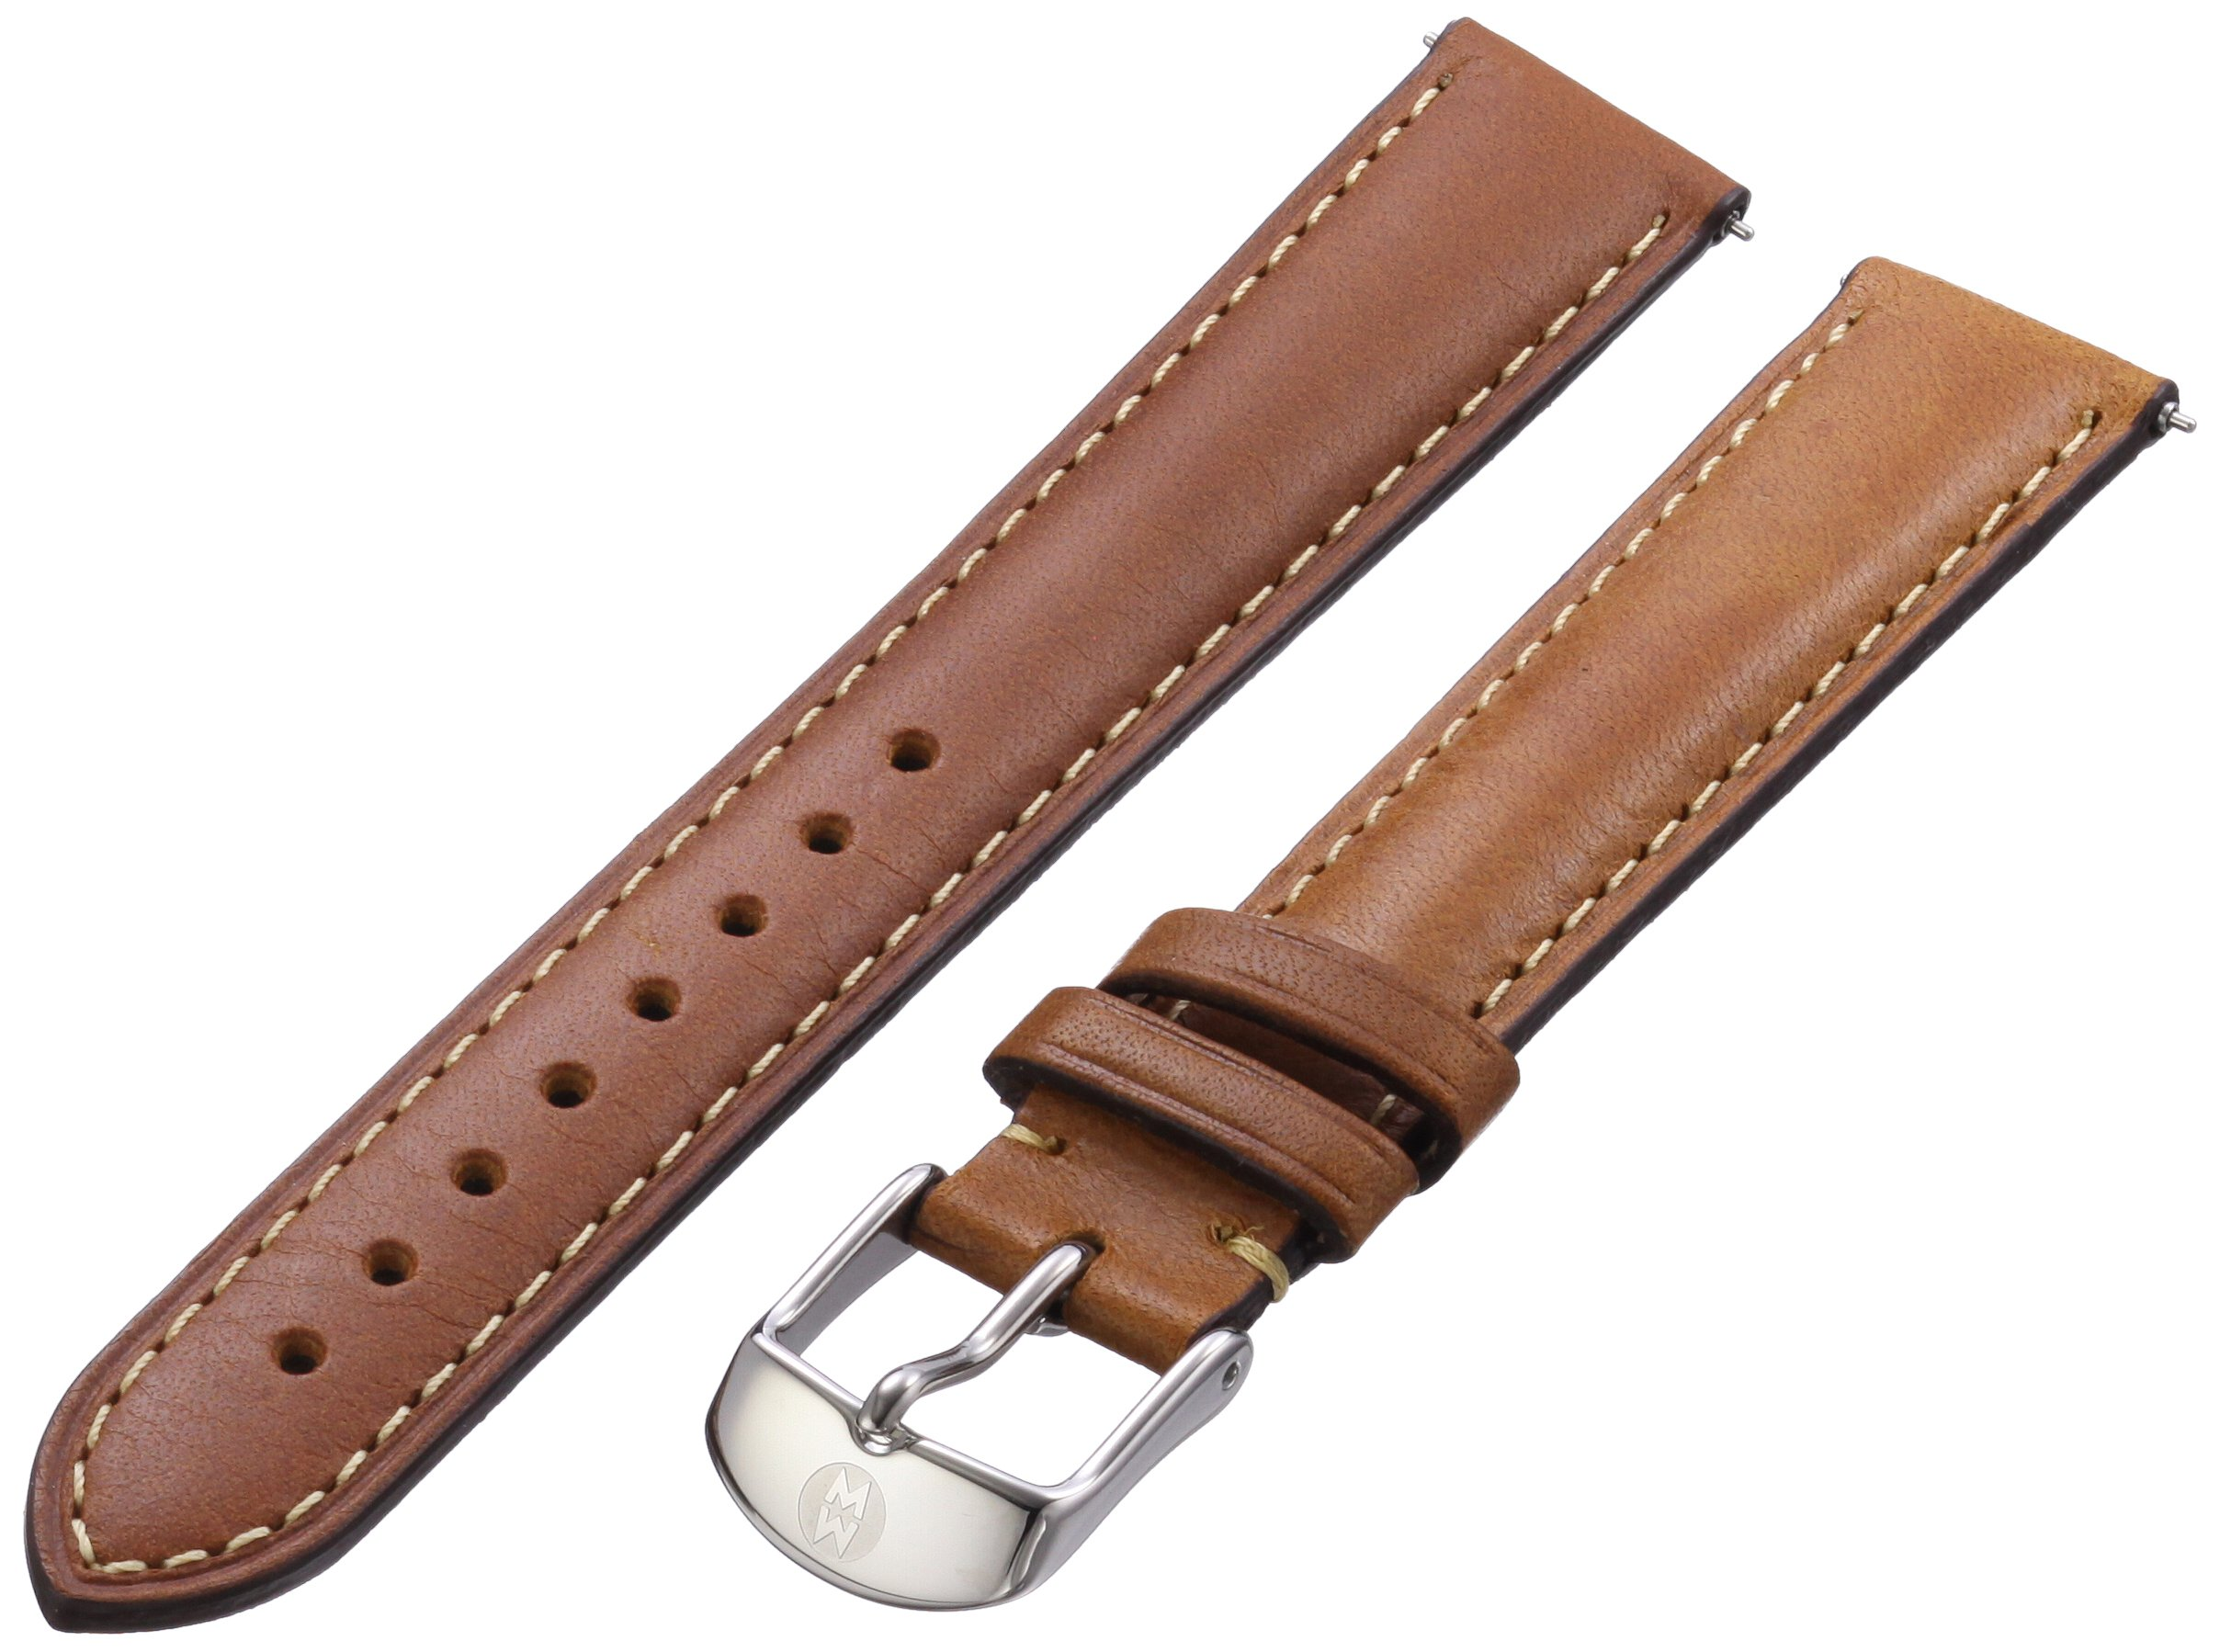 MICHELE MS16AA270216 16mm Leather Calfskin Brown Watch Strap